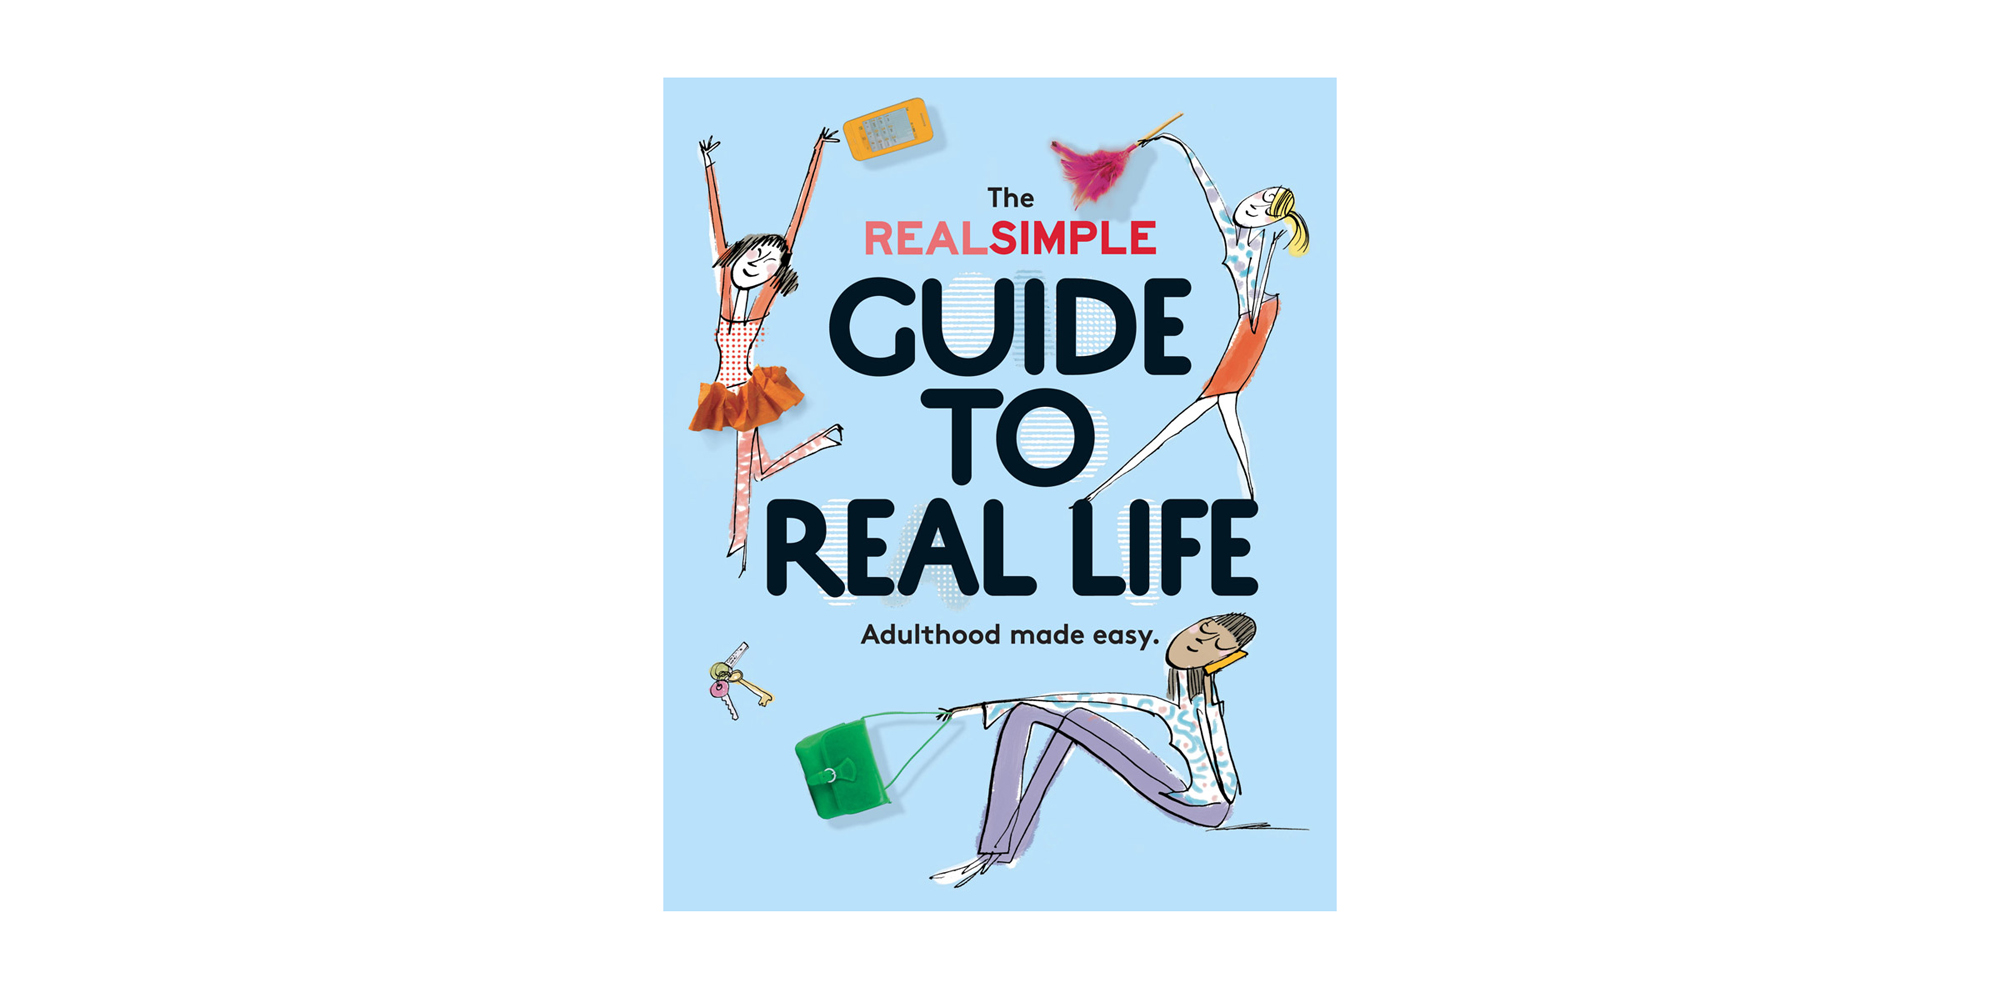 The Real Simple Guide to Real Life, by the editors of Real Simple